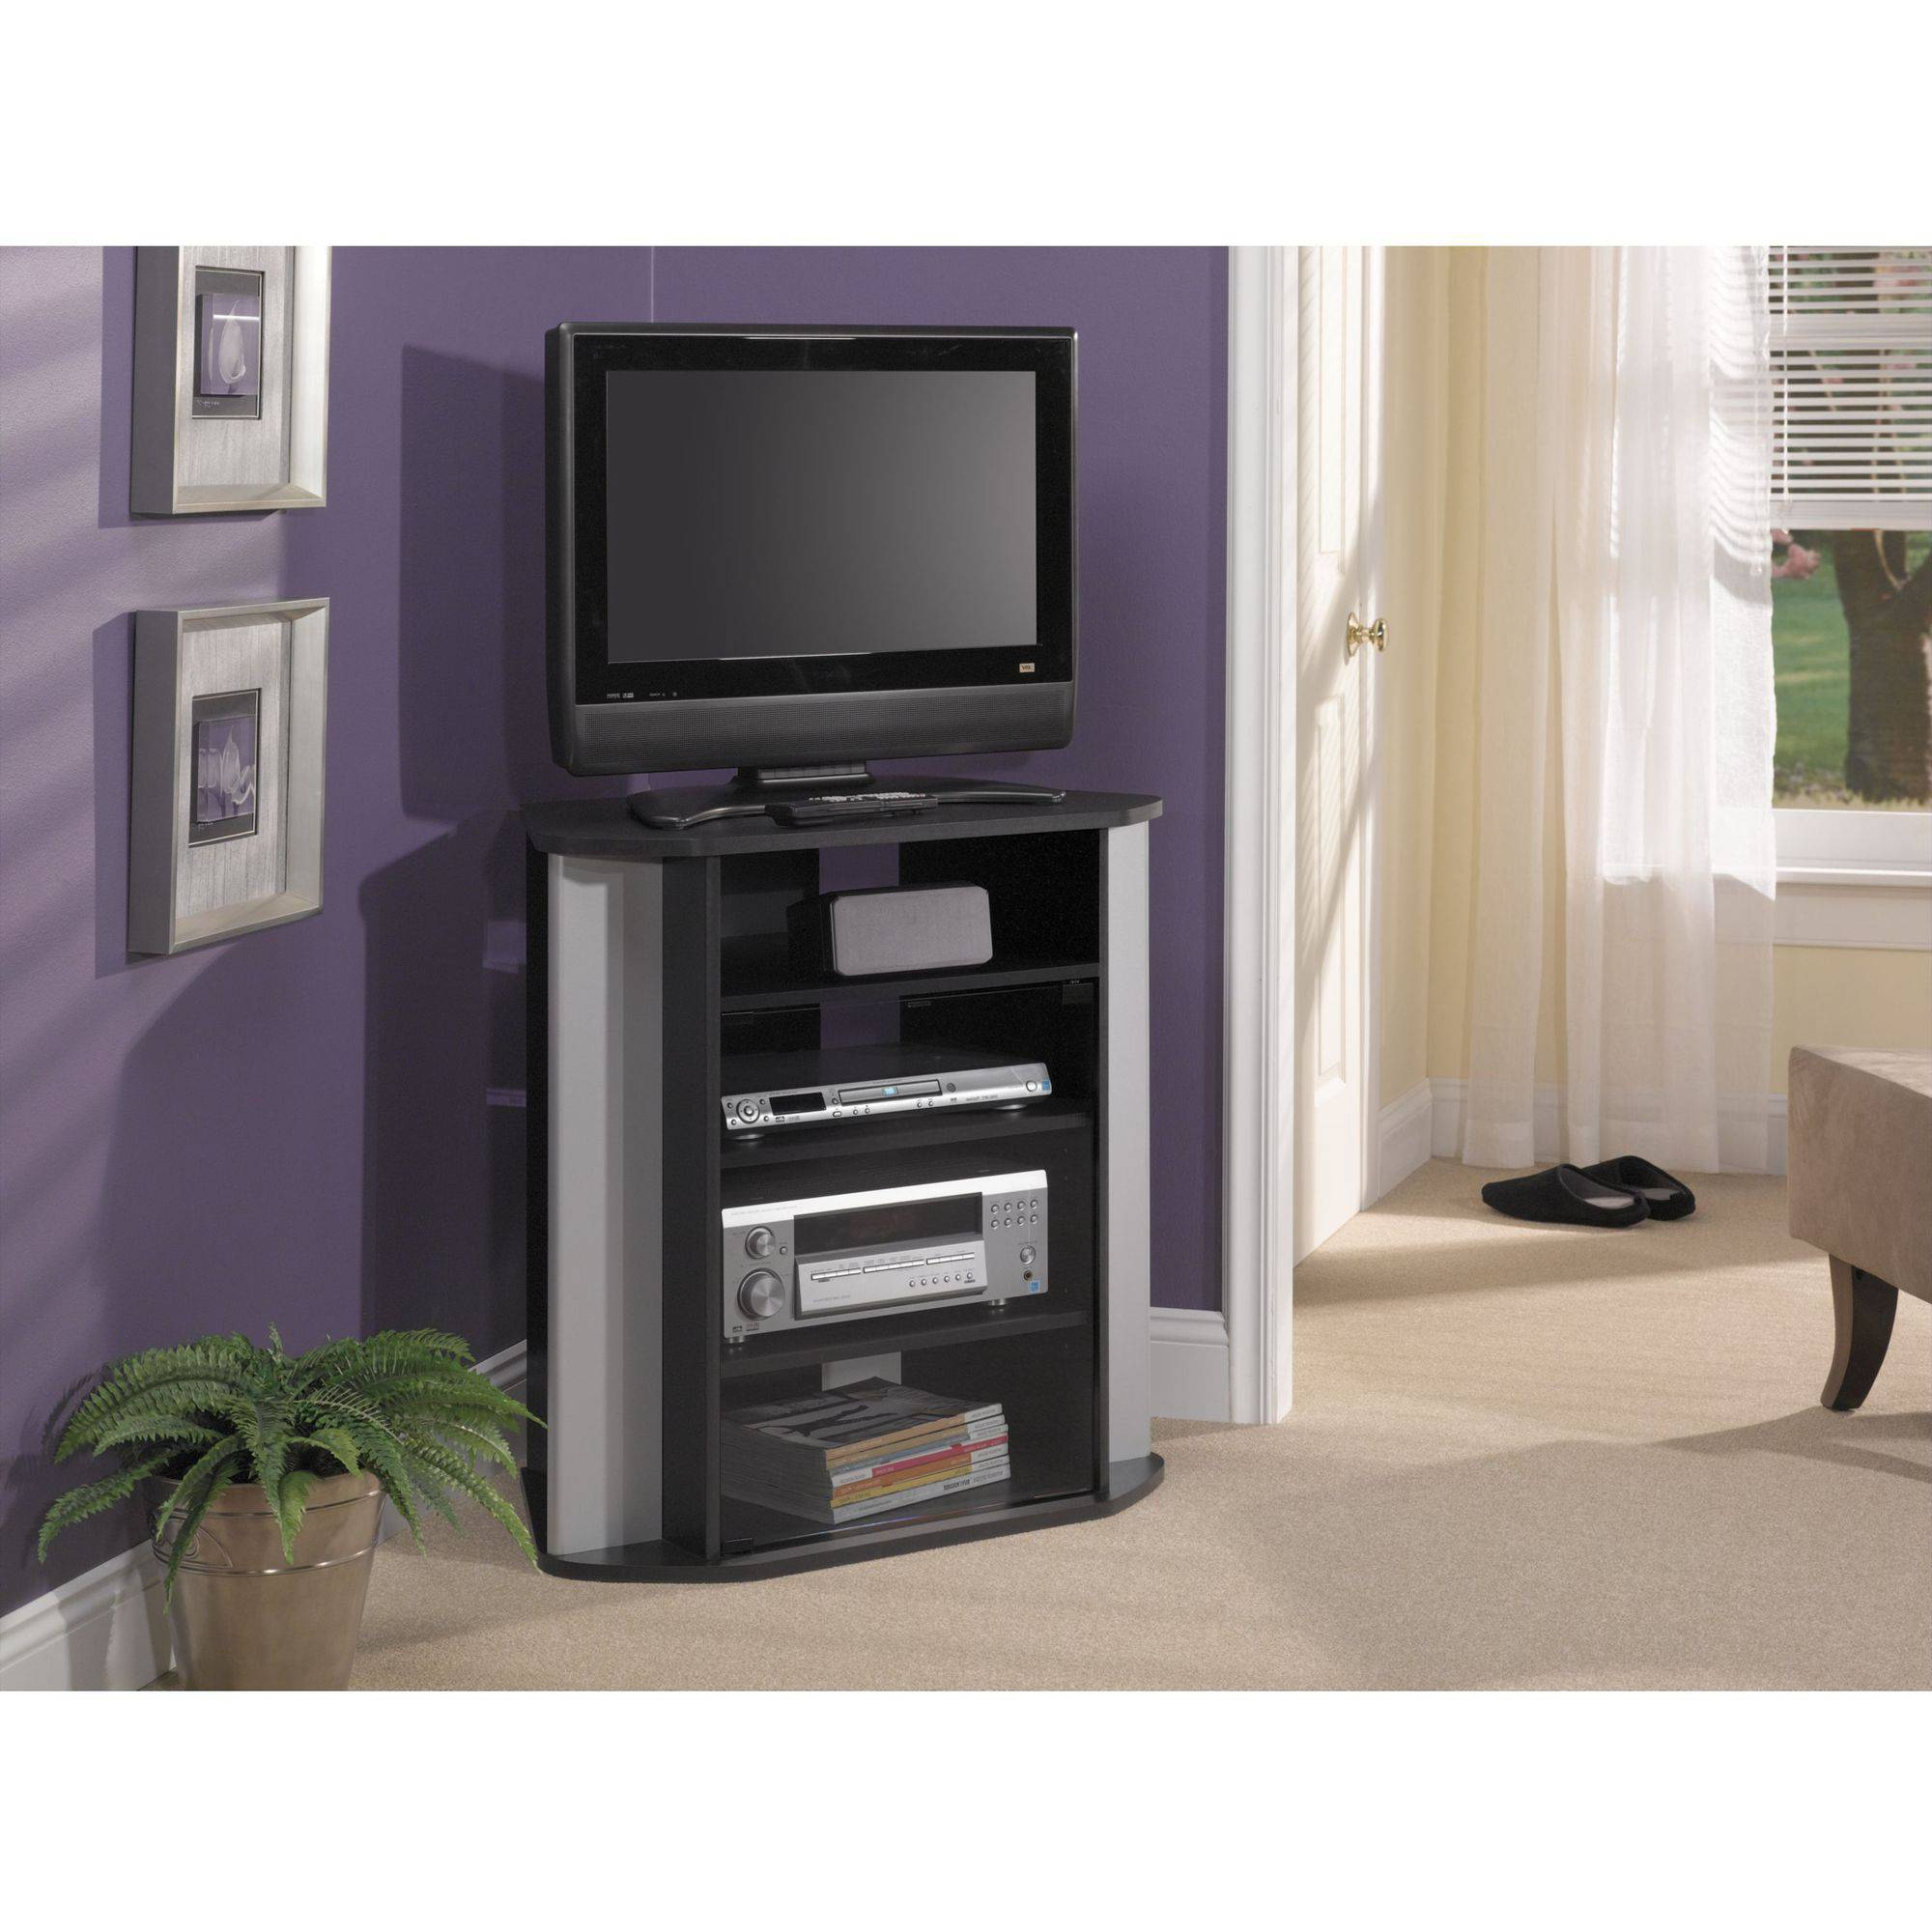 Well Liked Low Corner Tv Cabinets Regarding Bush Furniture Visions Tall Corner Tv Stand In Black And Metallic (View 19 of 20)